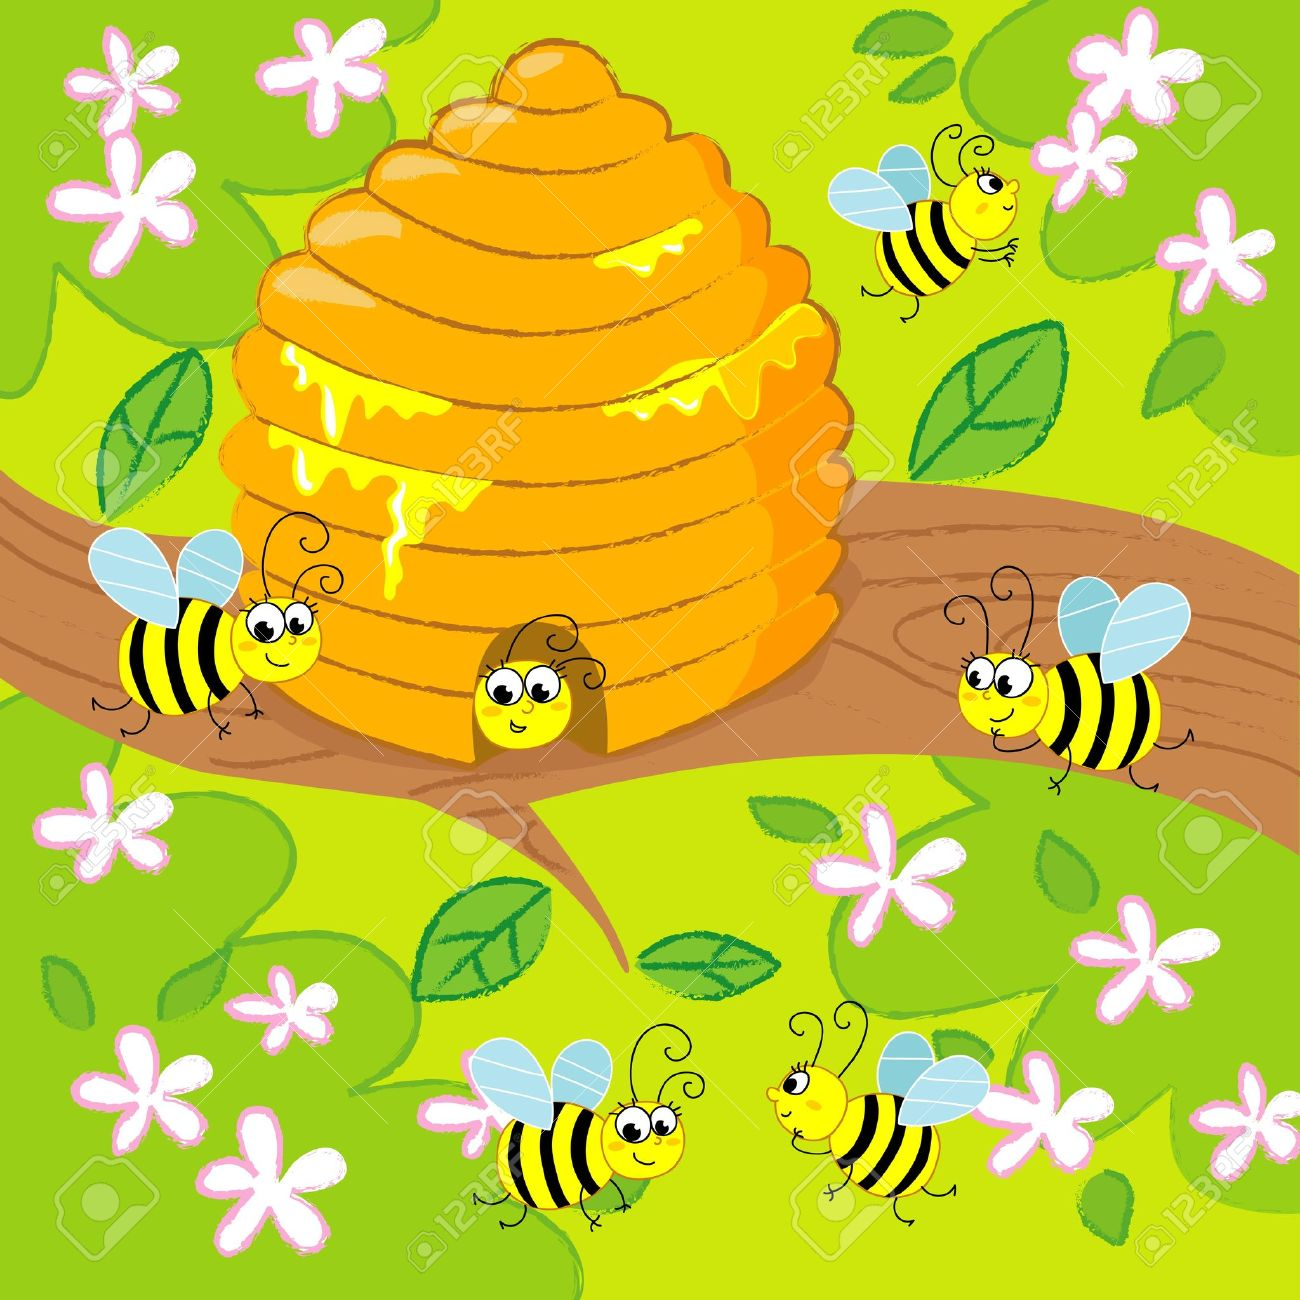 cartoon beehive with flying happy bees in spring image for kids stock vector